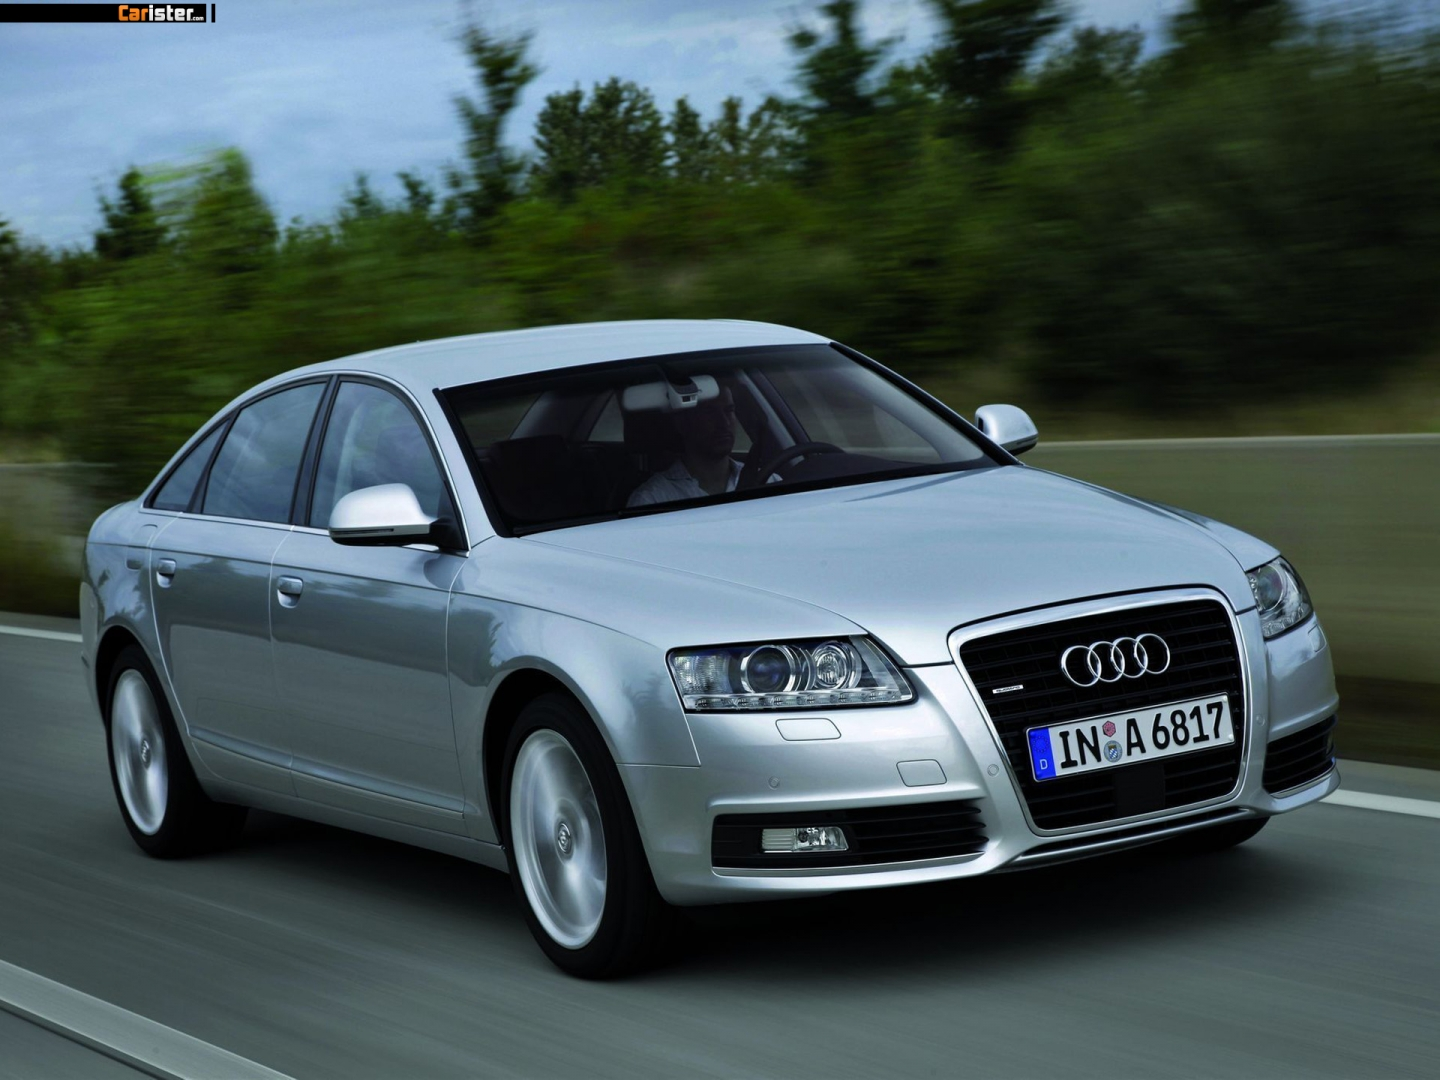 Audi A6 2009 - Photo 52 - Taille: 1440x1080